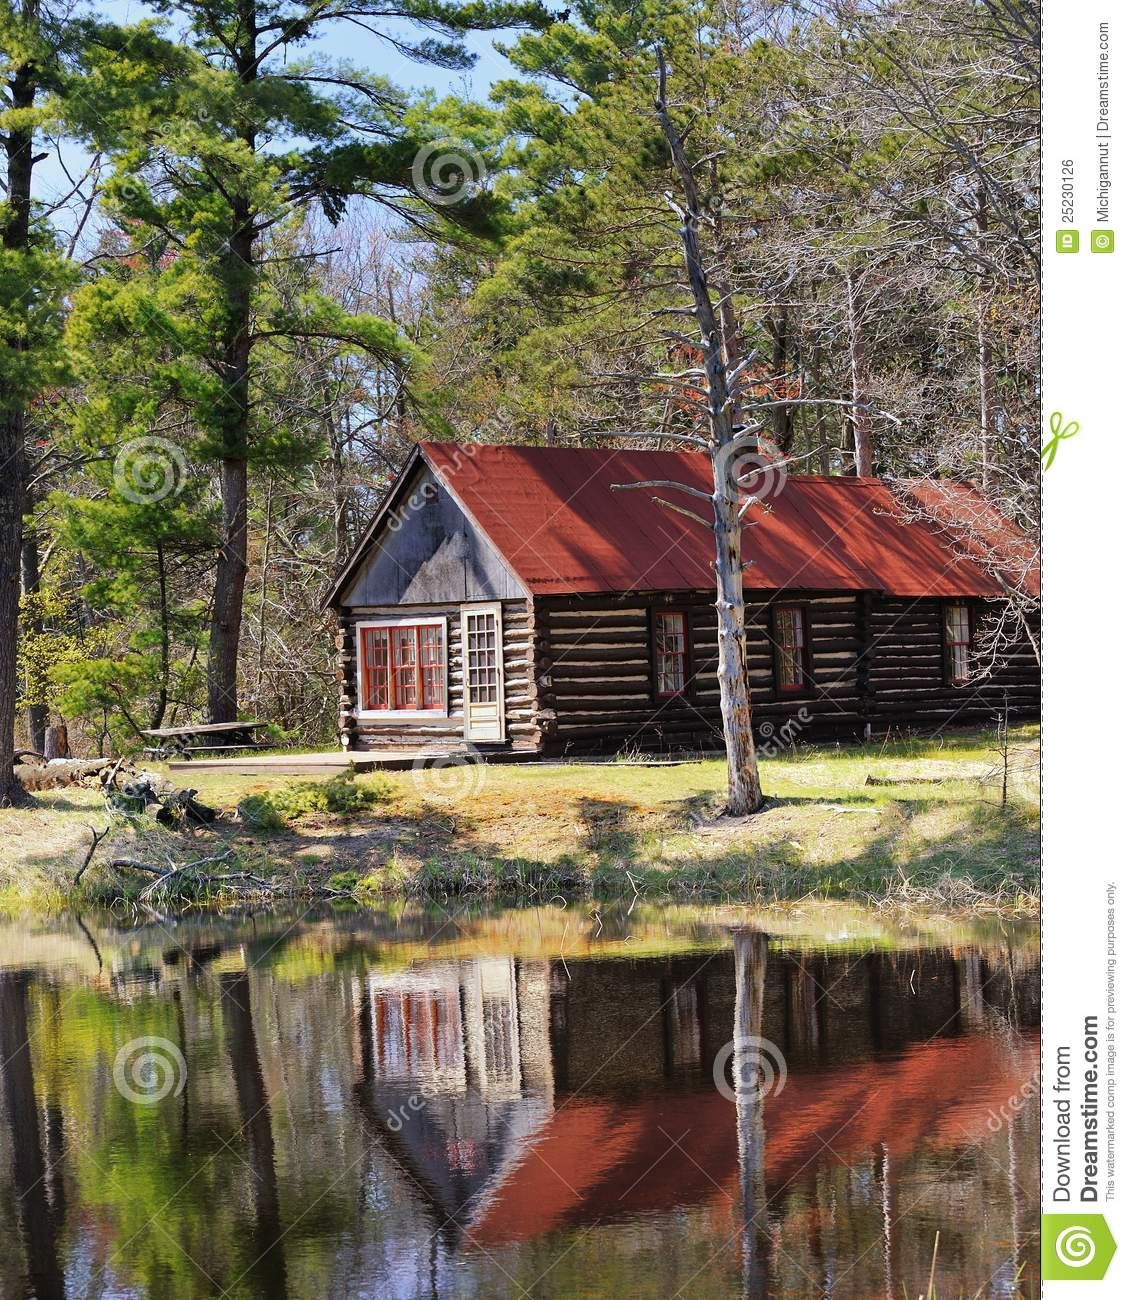 Colorful Lake Michigan Cottage: Old Log Cabin In Michigan Forest Stock Photo